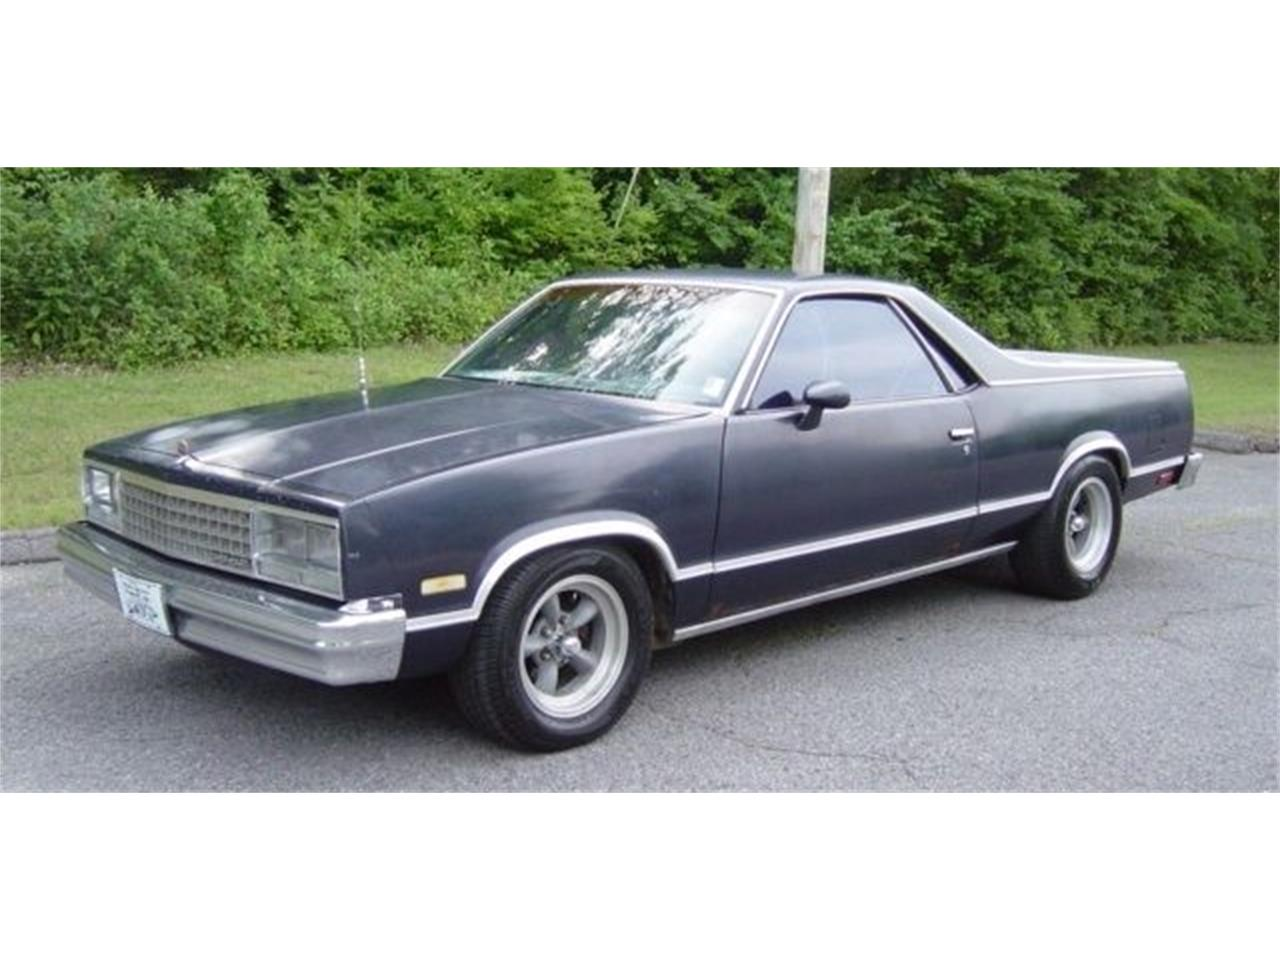 1983 Chevrolet El Camino (CC-1266036) for sale in Hendersonville, Tennessee